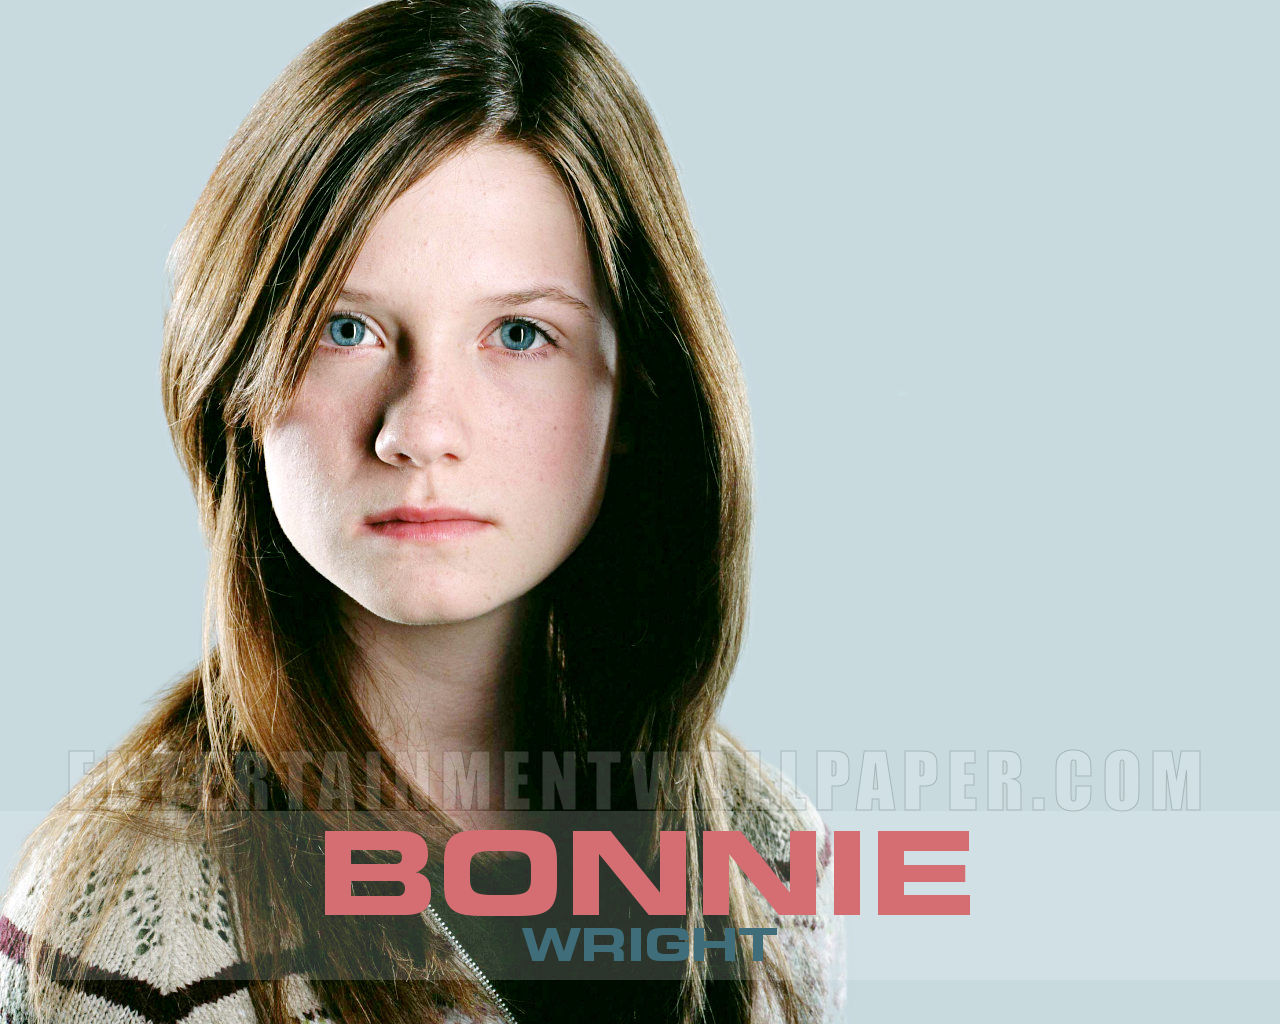 1280x1024 - Bonnie Wright Wallpapers 16